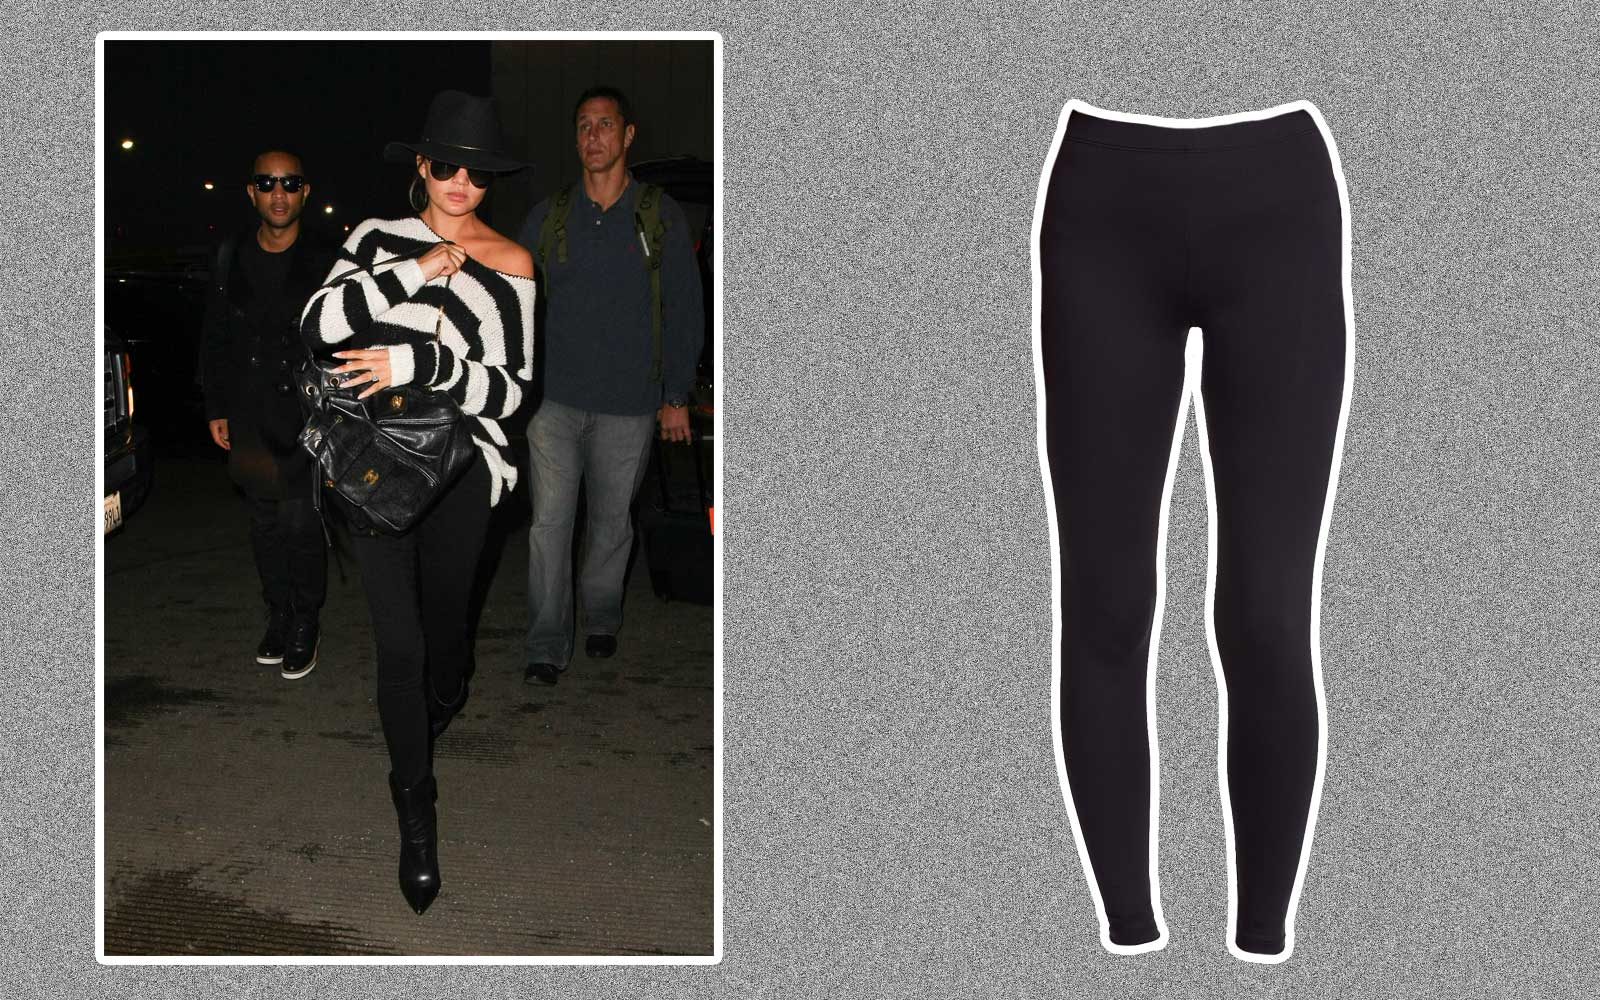 c4248dcff9 The Leggings Celebrities Love That Are Perfect for Travel | Travel + ...